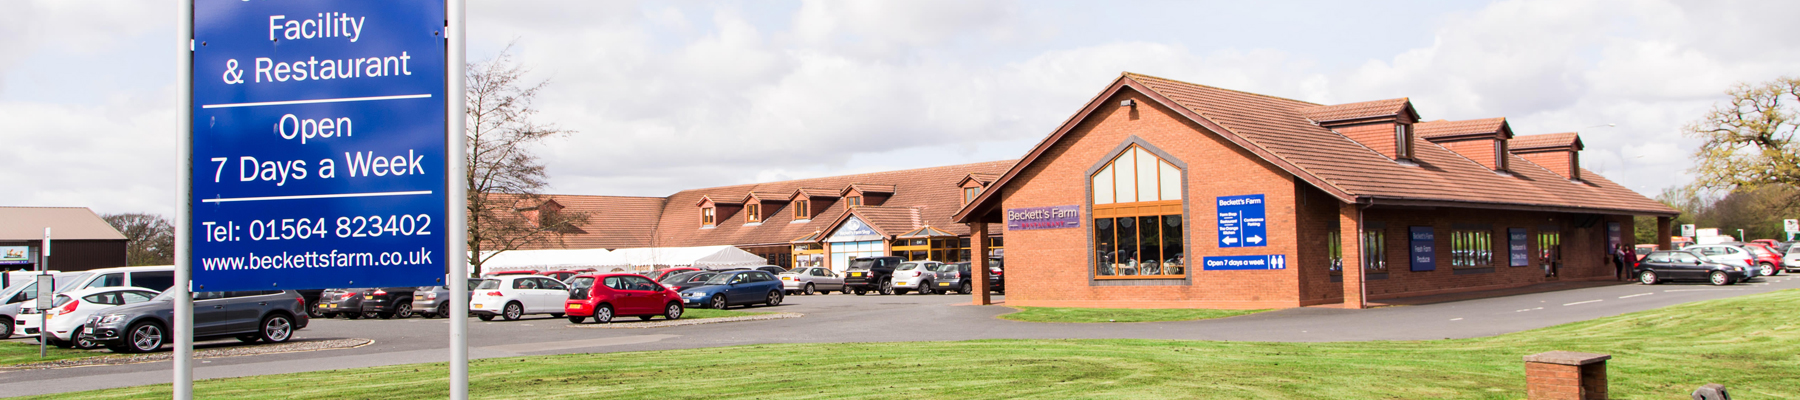 Becketts Farm Shop and Restaurant